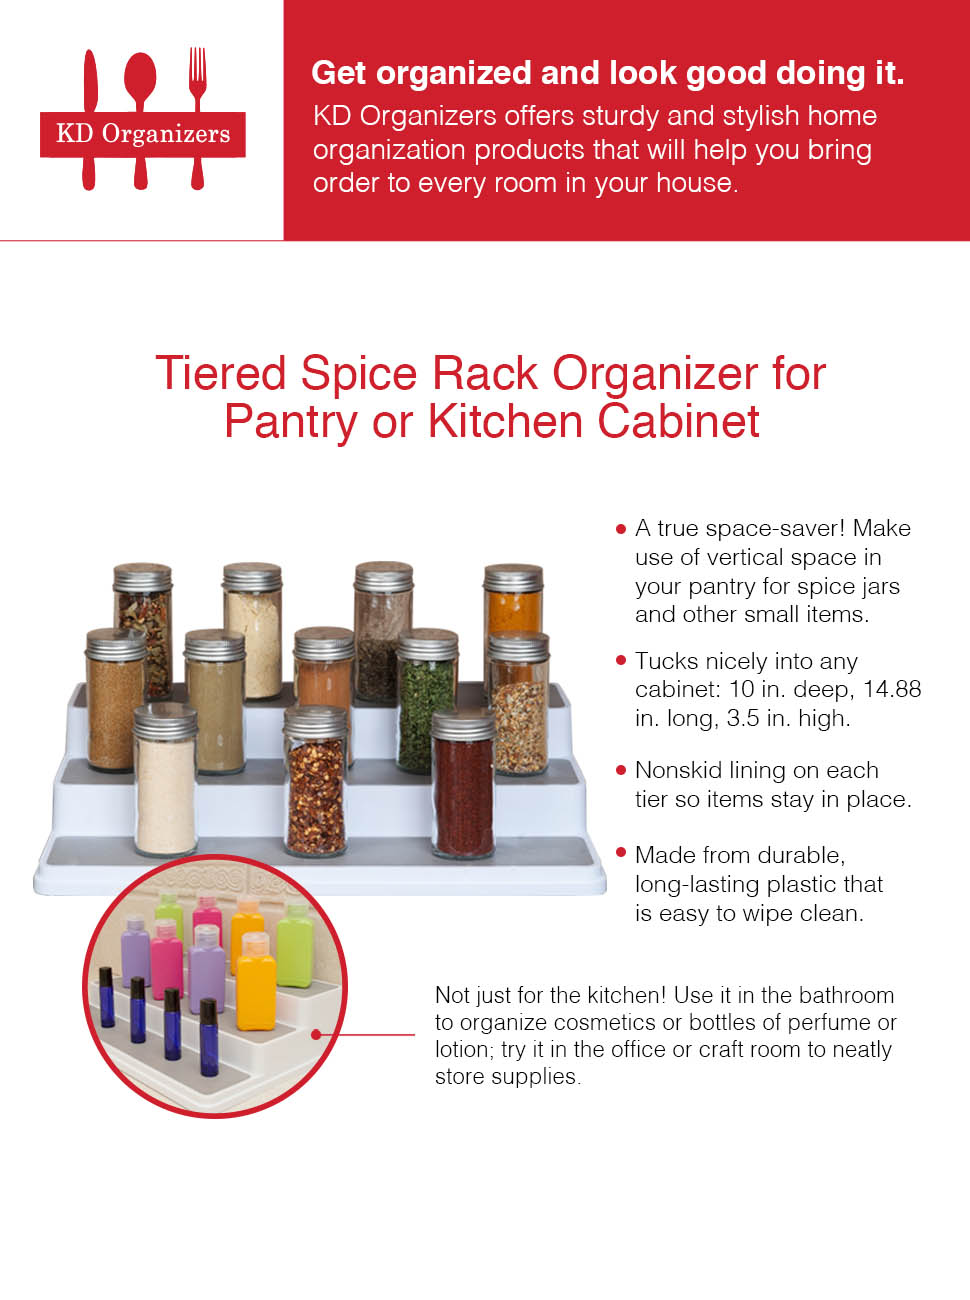 Amazon.com: KD Organizers Tiered Spice Rack Organizer for Pantry or ...